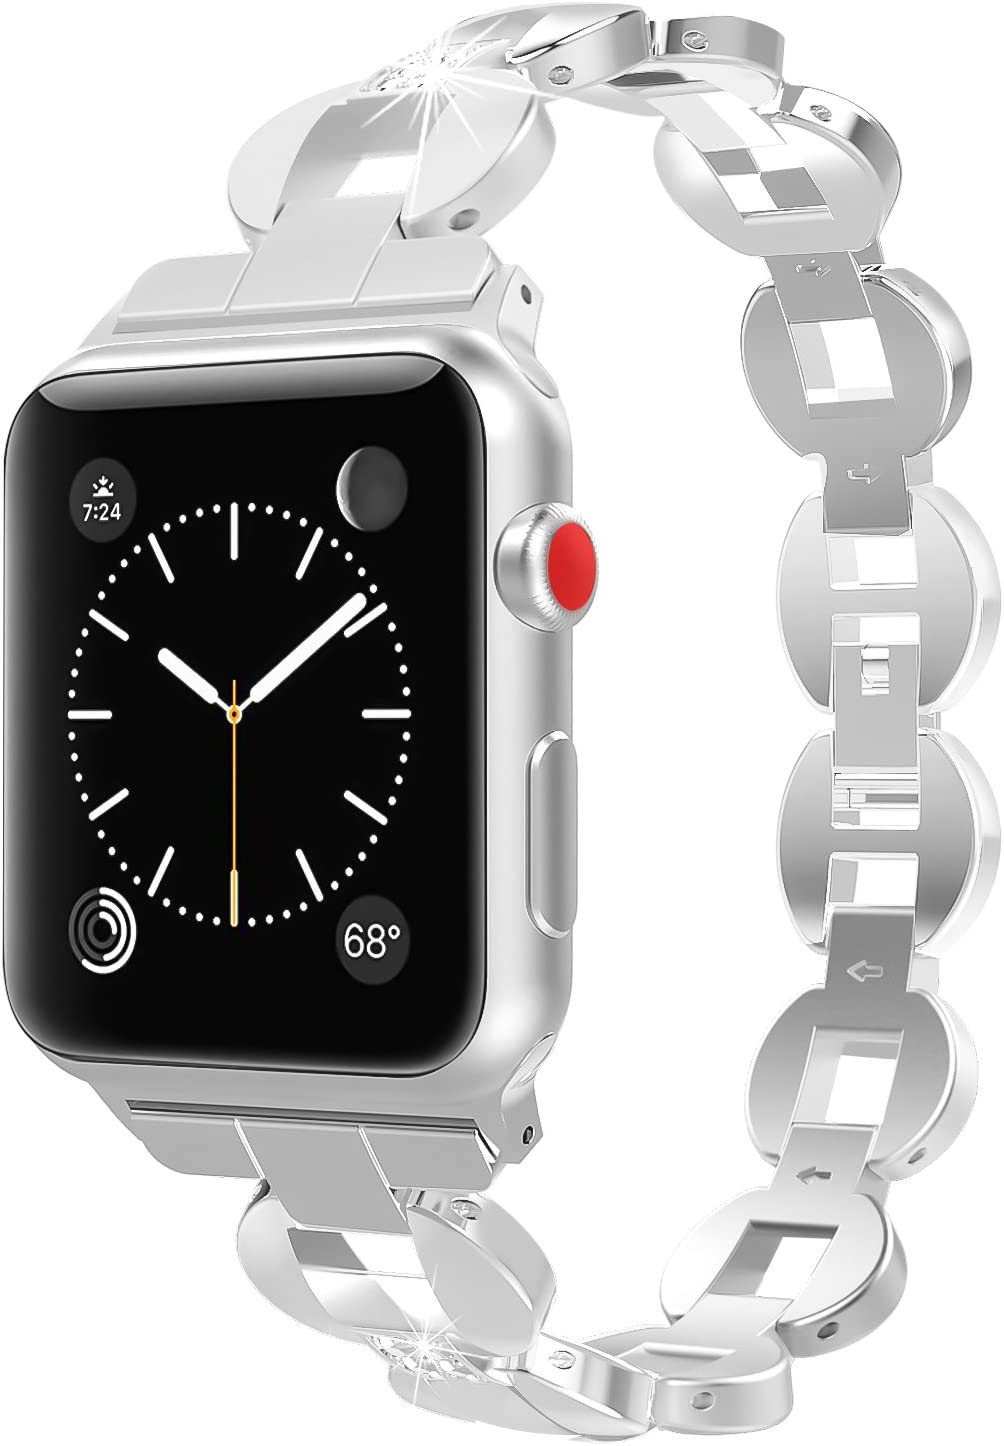 MoKo Band Compatible with Apple Watch 42mm 44mm Series 5/4/3/2/1, Premium Crystal Diamond Alloy Replacement Smart Watch Strap with Stainless Steel Clasp - Sliver (Not Fit iWatch 38mm 40mm)